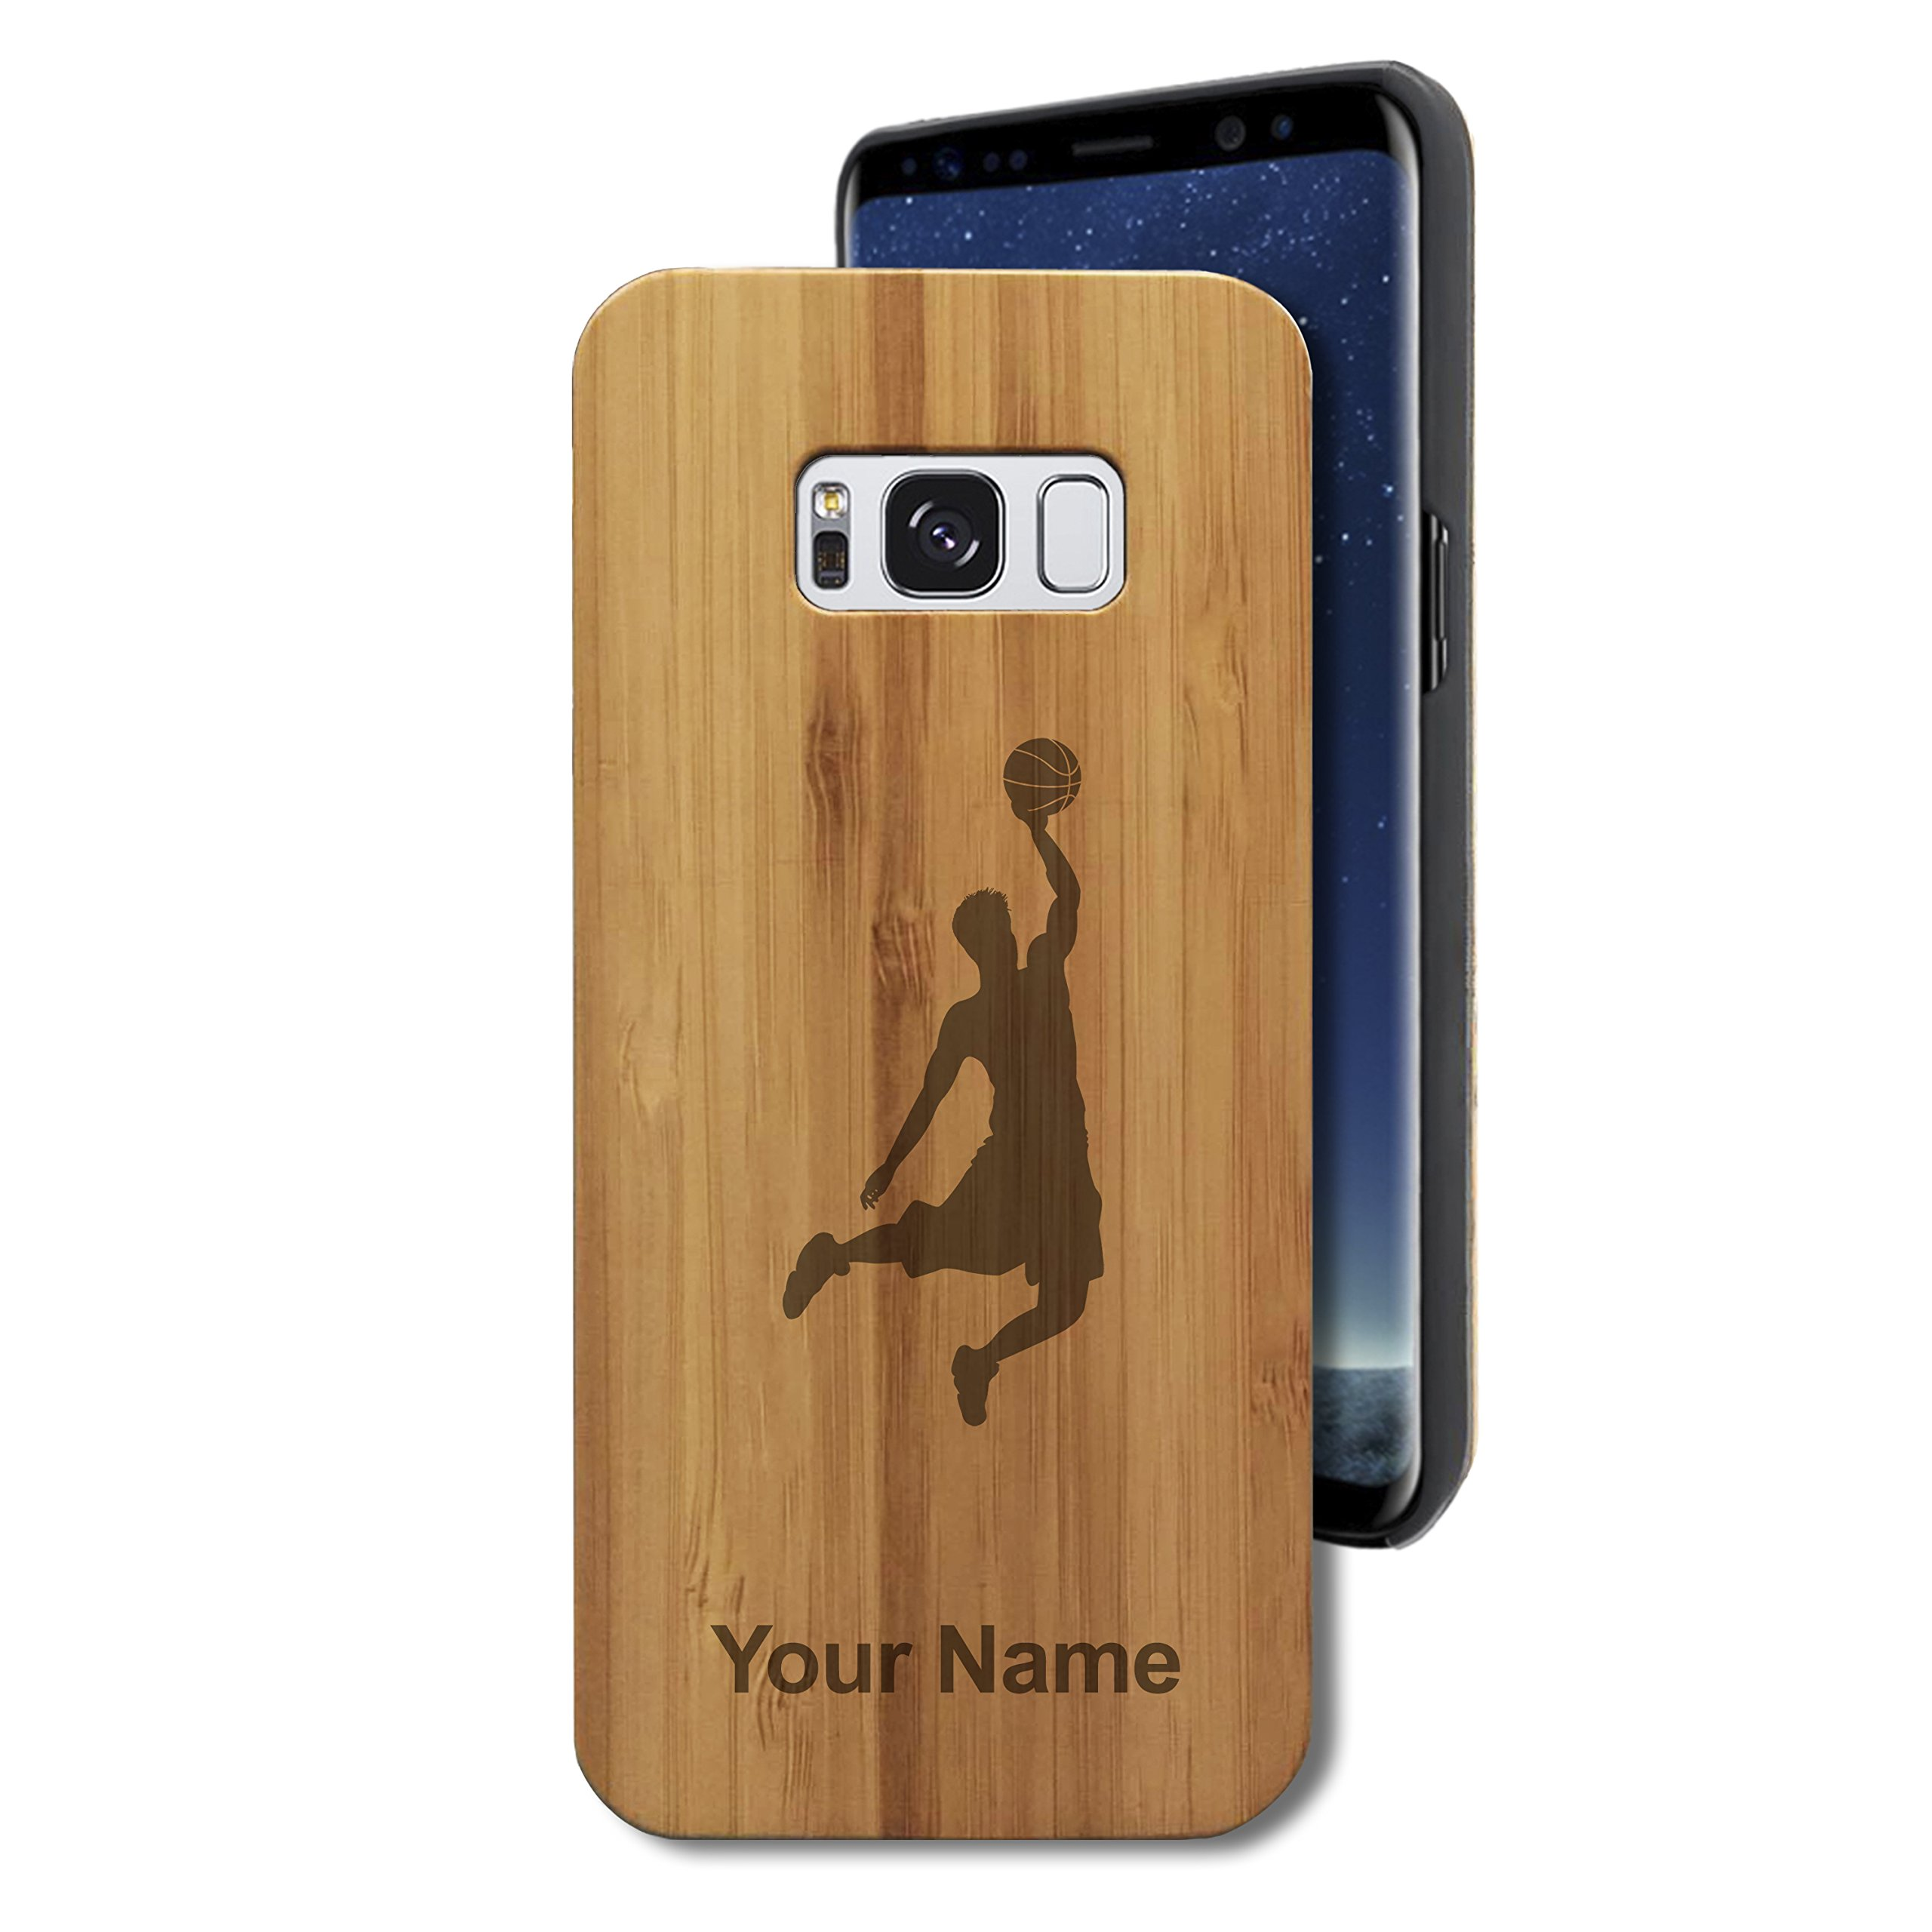 Bamboo Case for Galaxy S8+ PLUS - Basketball Slam Dunk Man - Personalized Engraving Included